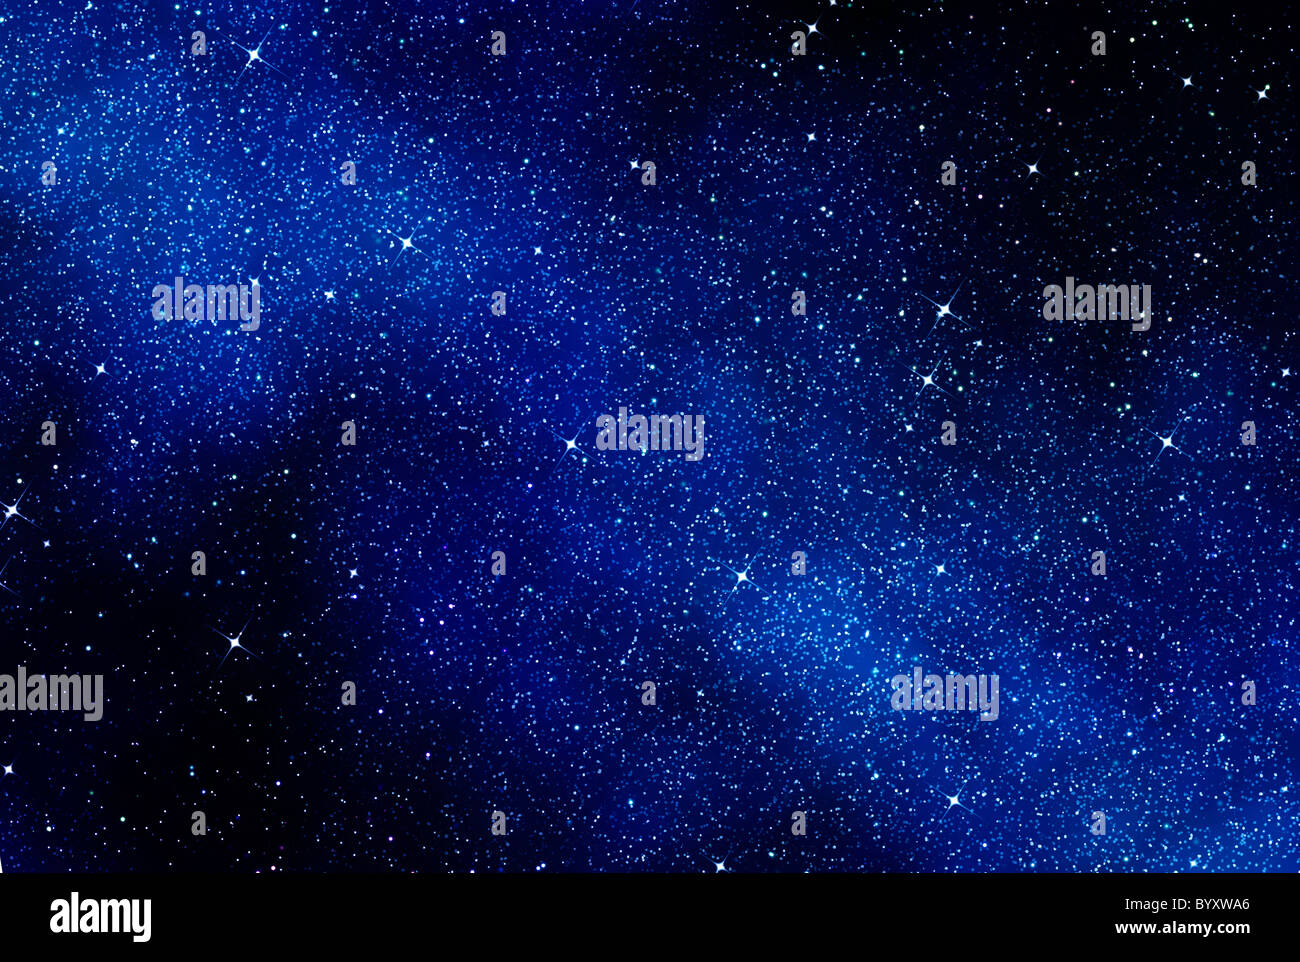 great image of space or a starry night sky  Stock Photo